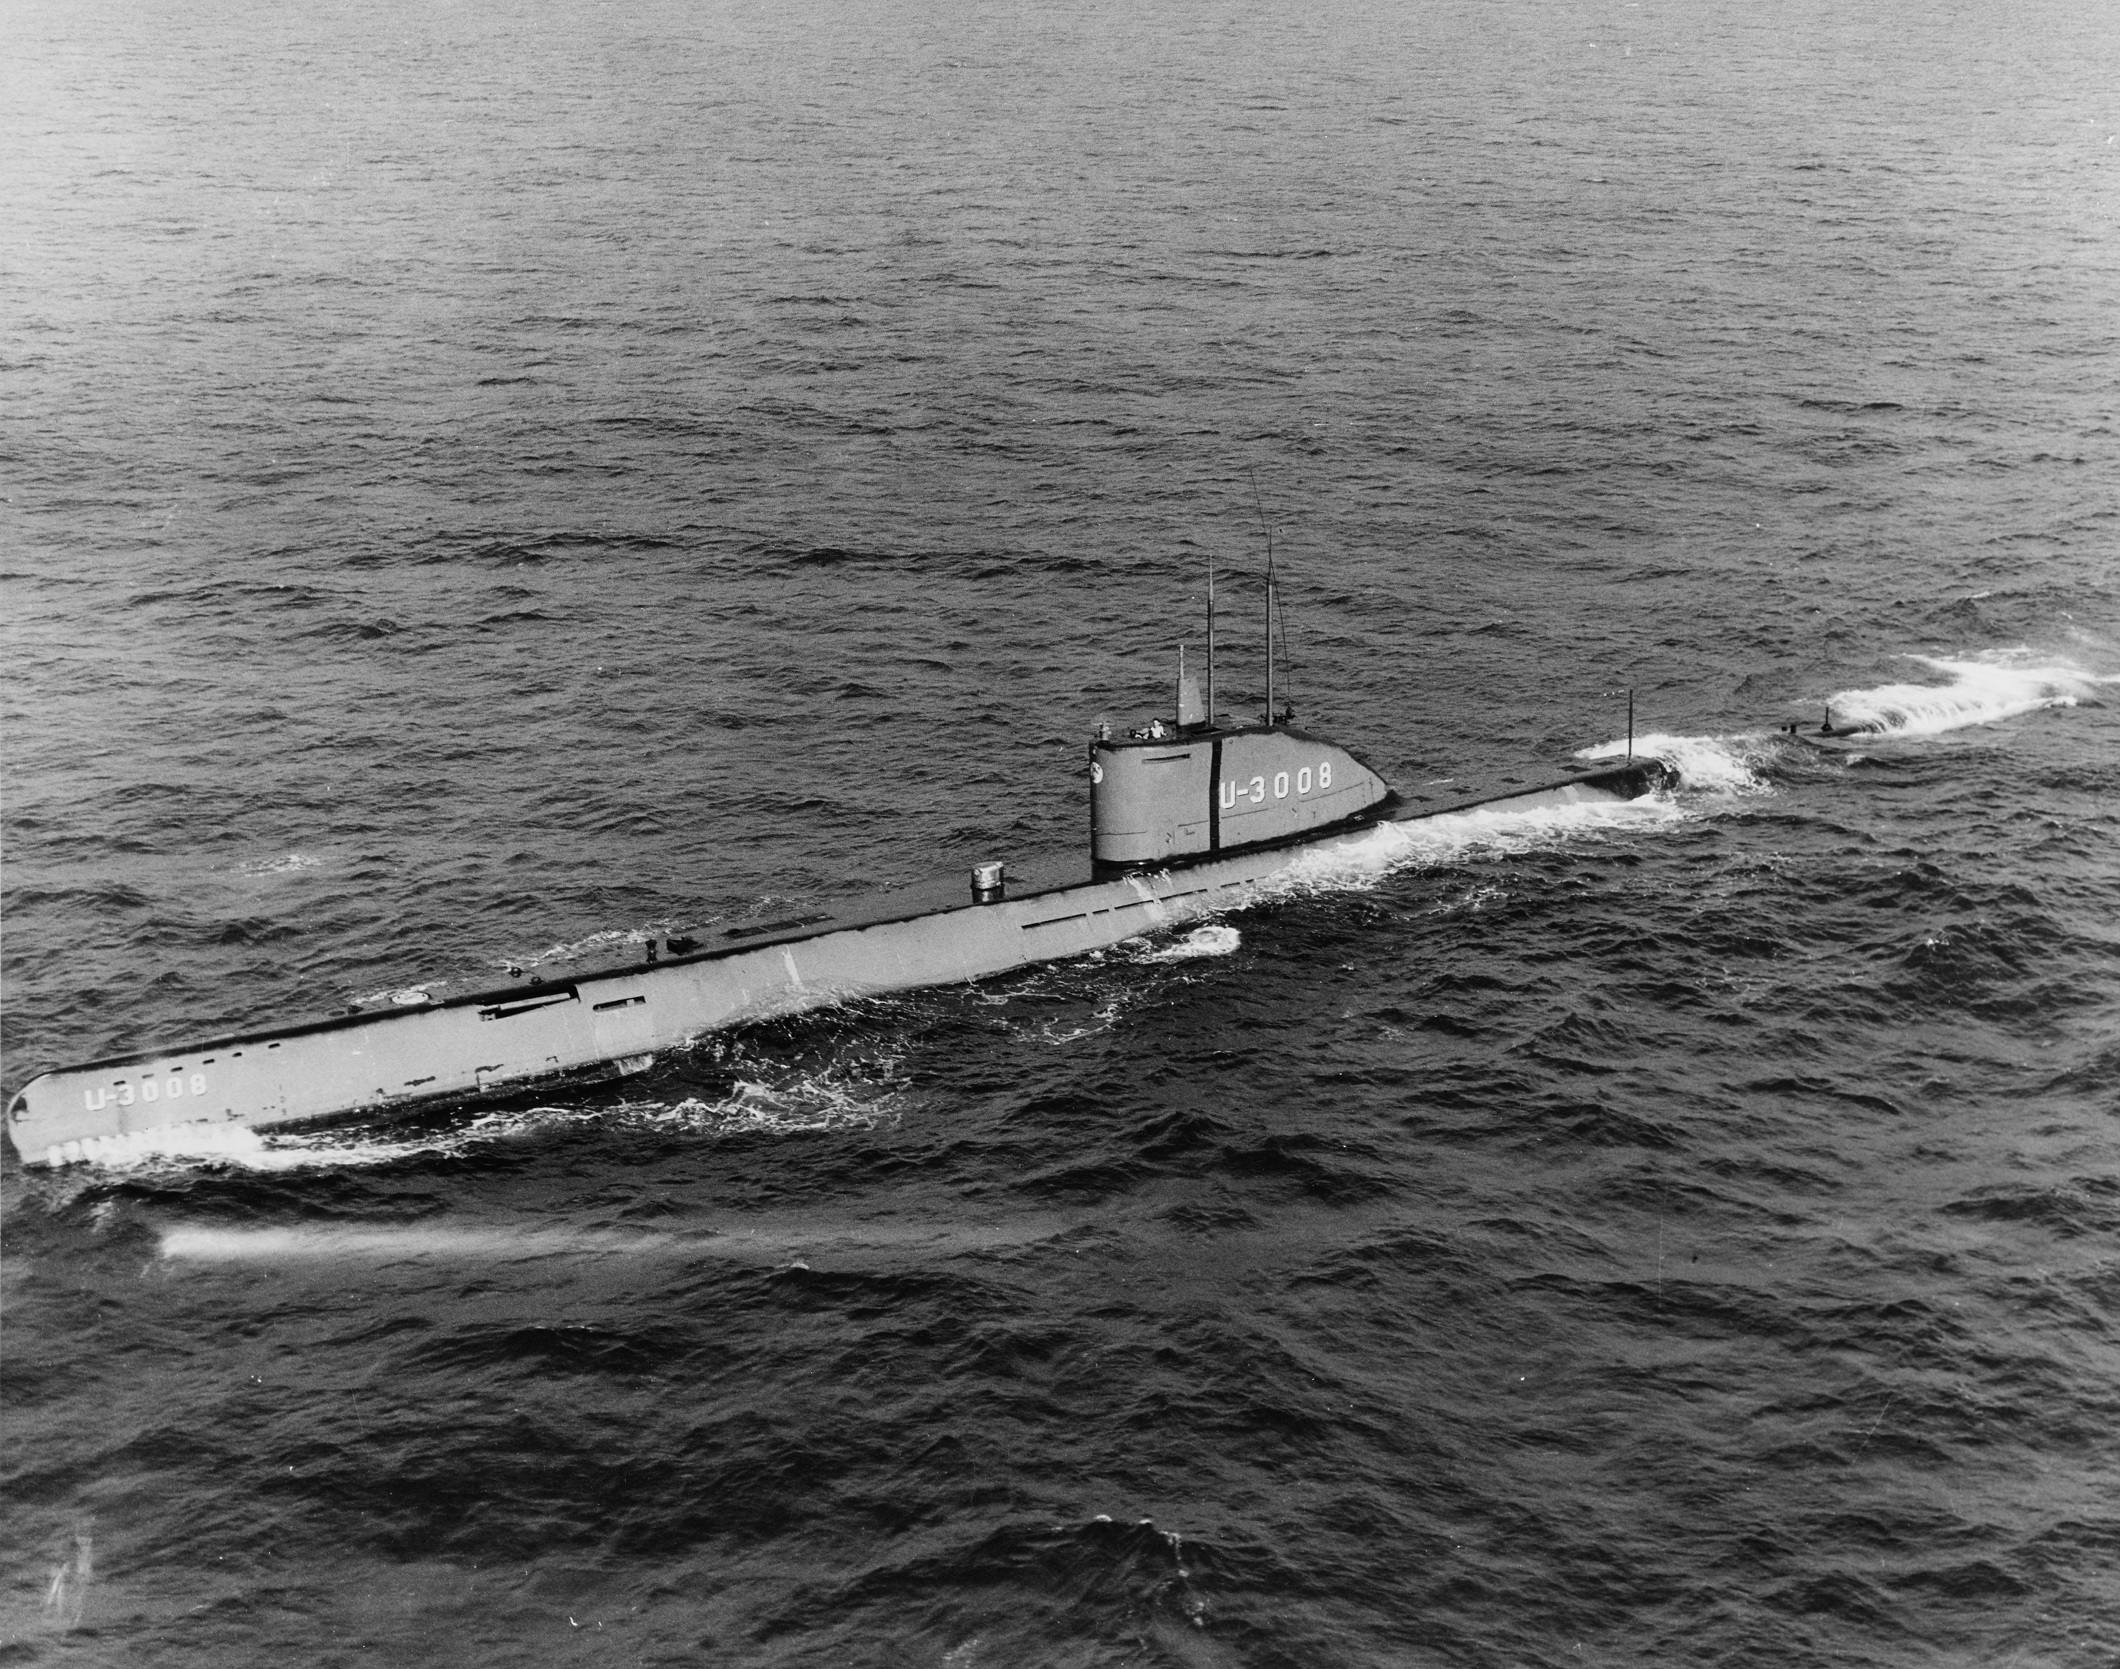 Hitler Built a World War II Submarine That Was Revolutionary. It Ended Up a Total Failure.